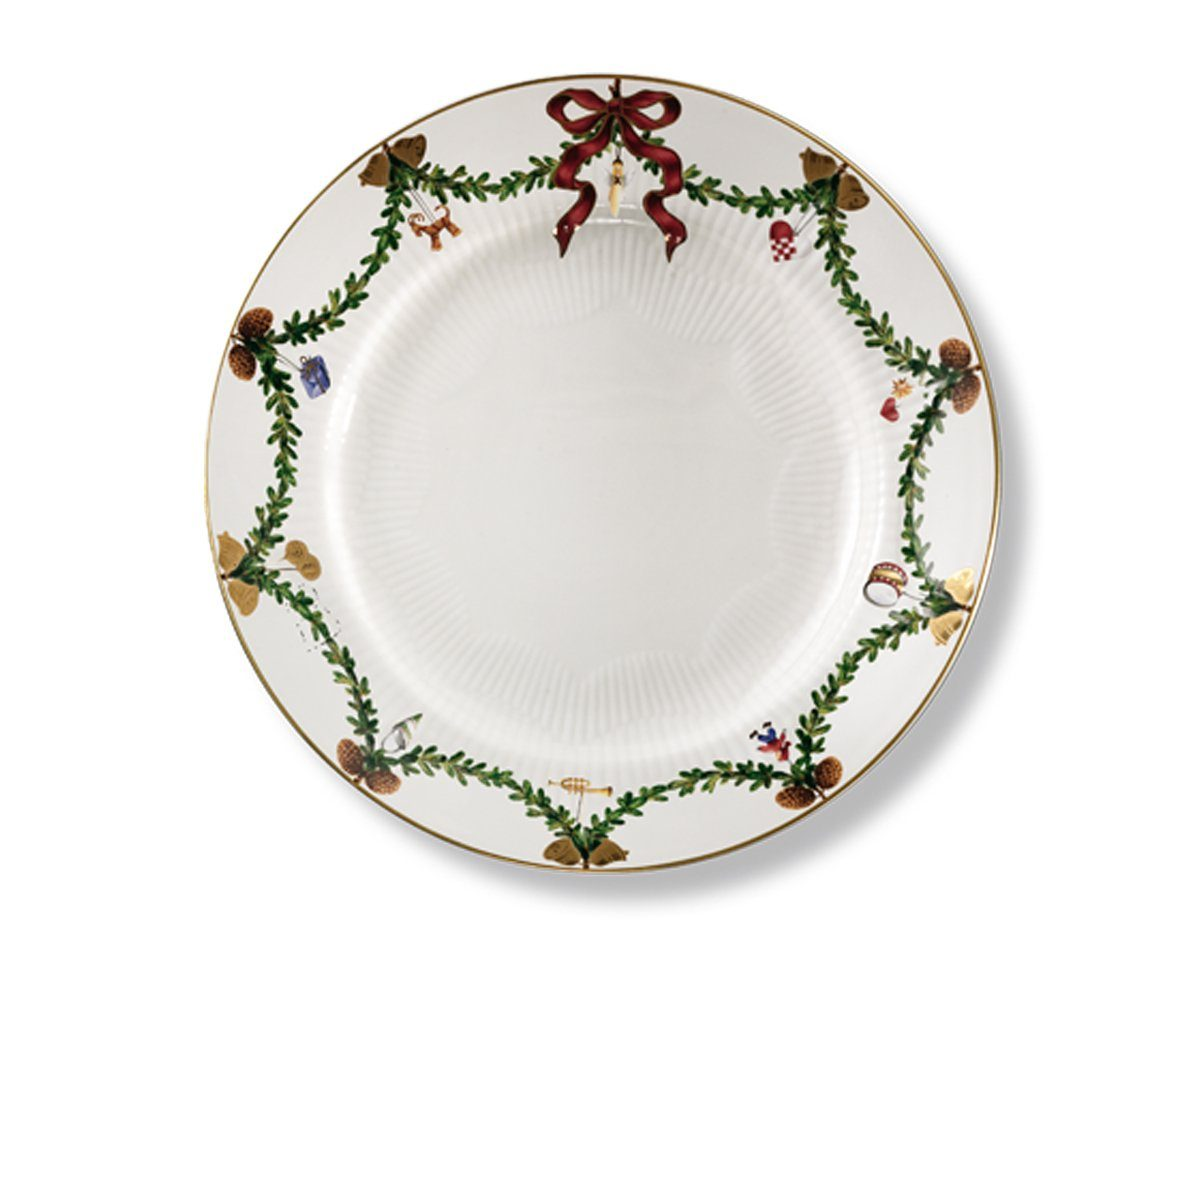 ROYAL COPENHAGEN ROYAL COPENHAGEN Teller, flach Star Fluted Christmas 27 cm